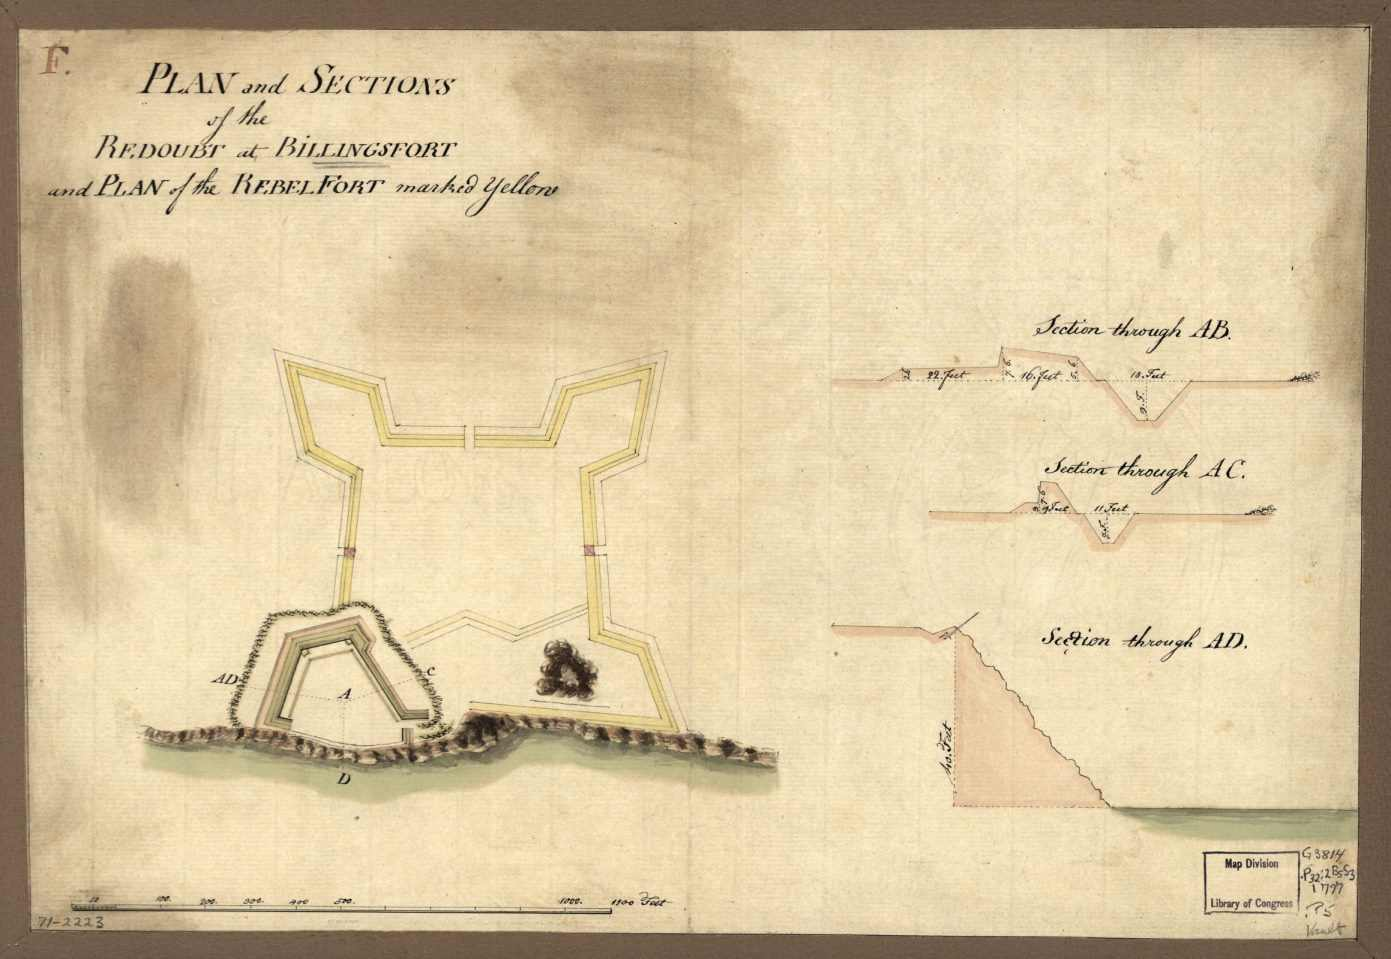 Plan of Fort Billingsport